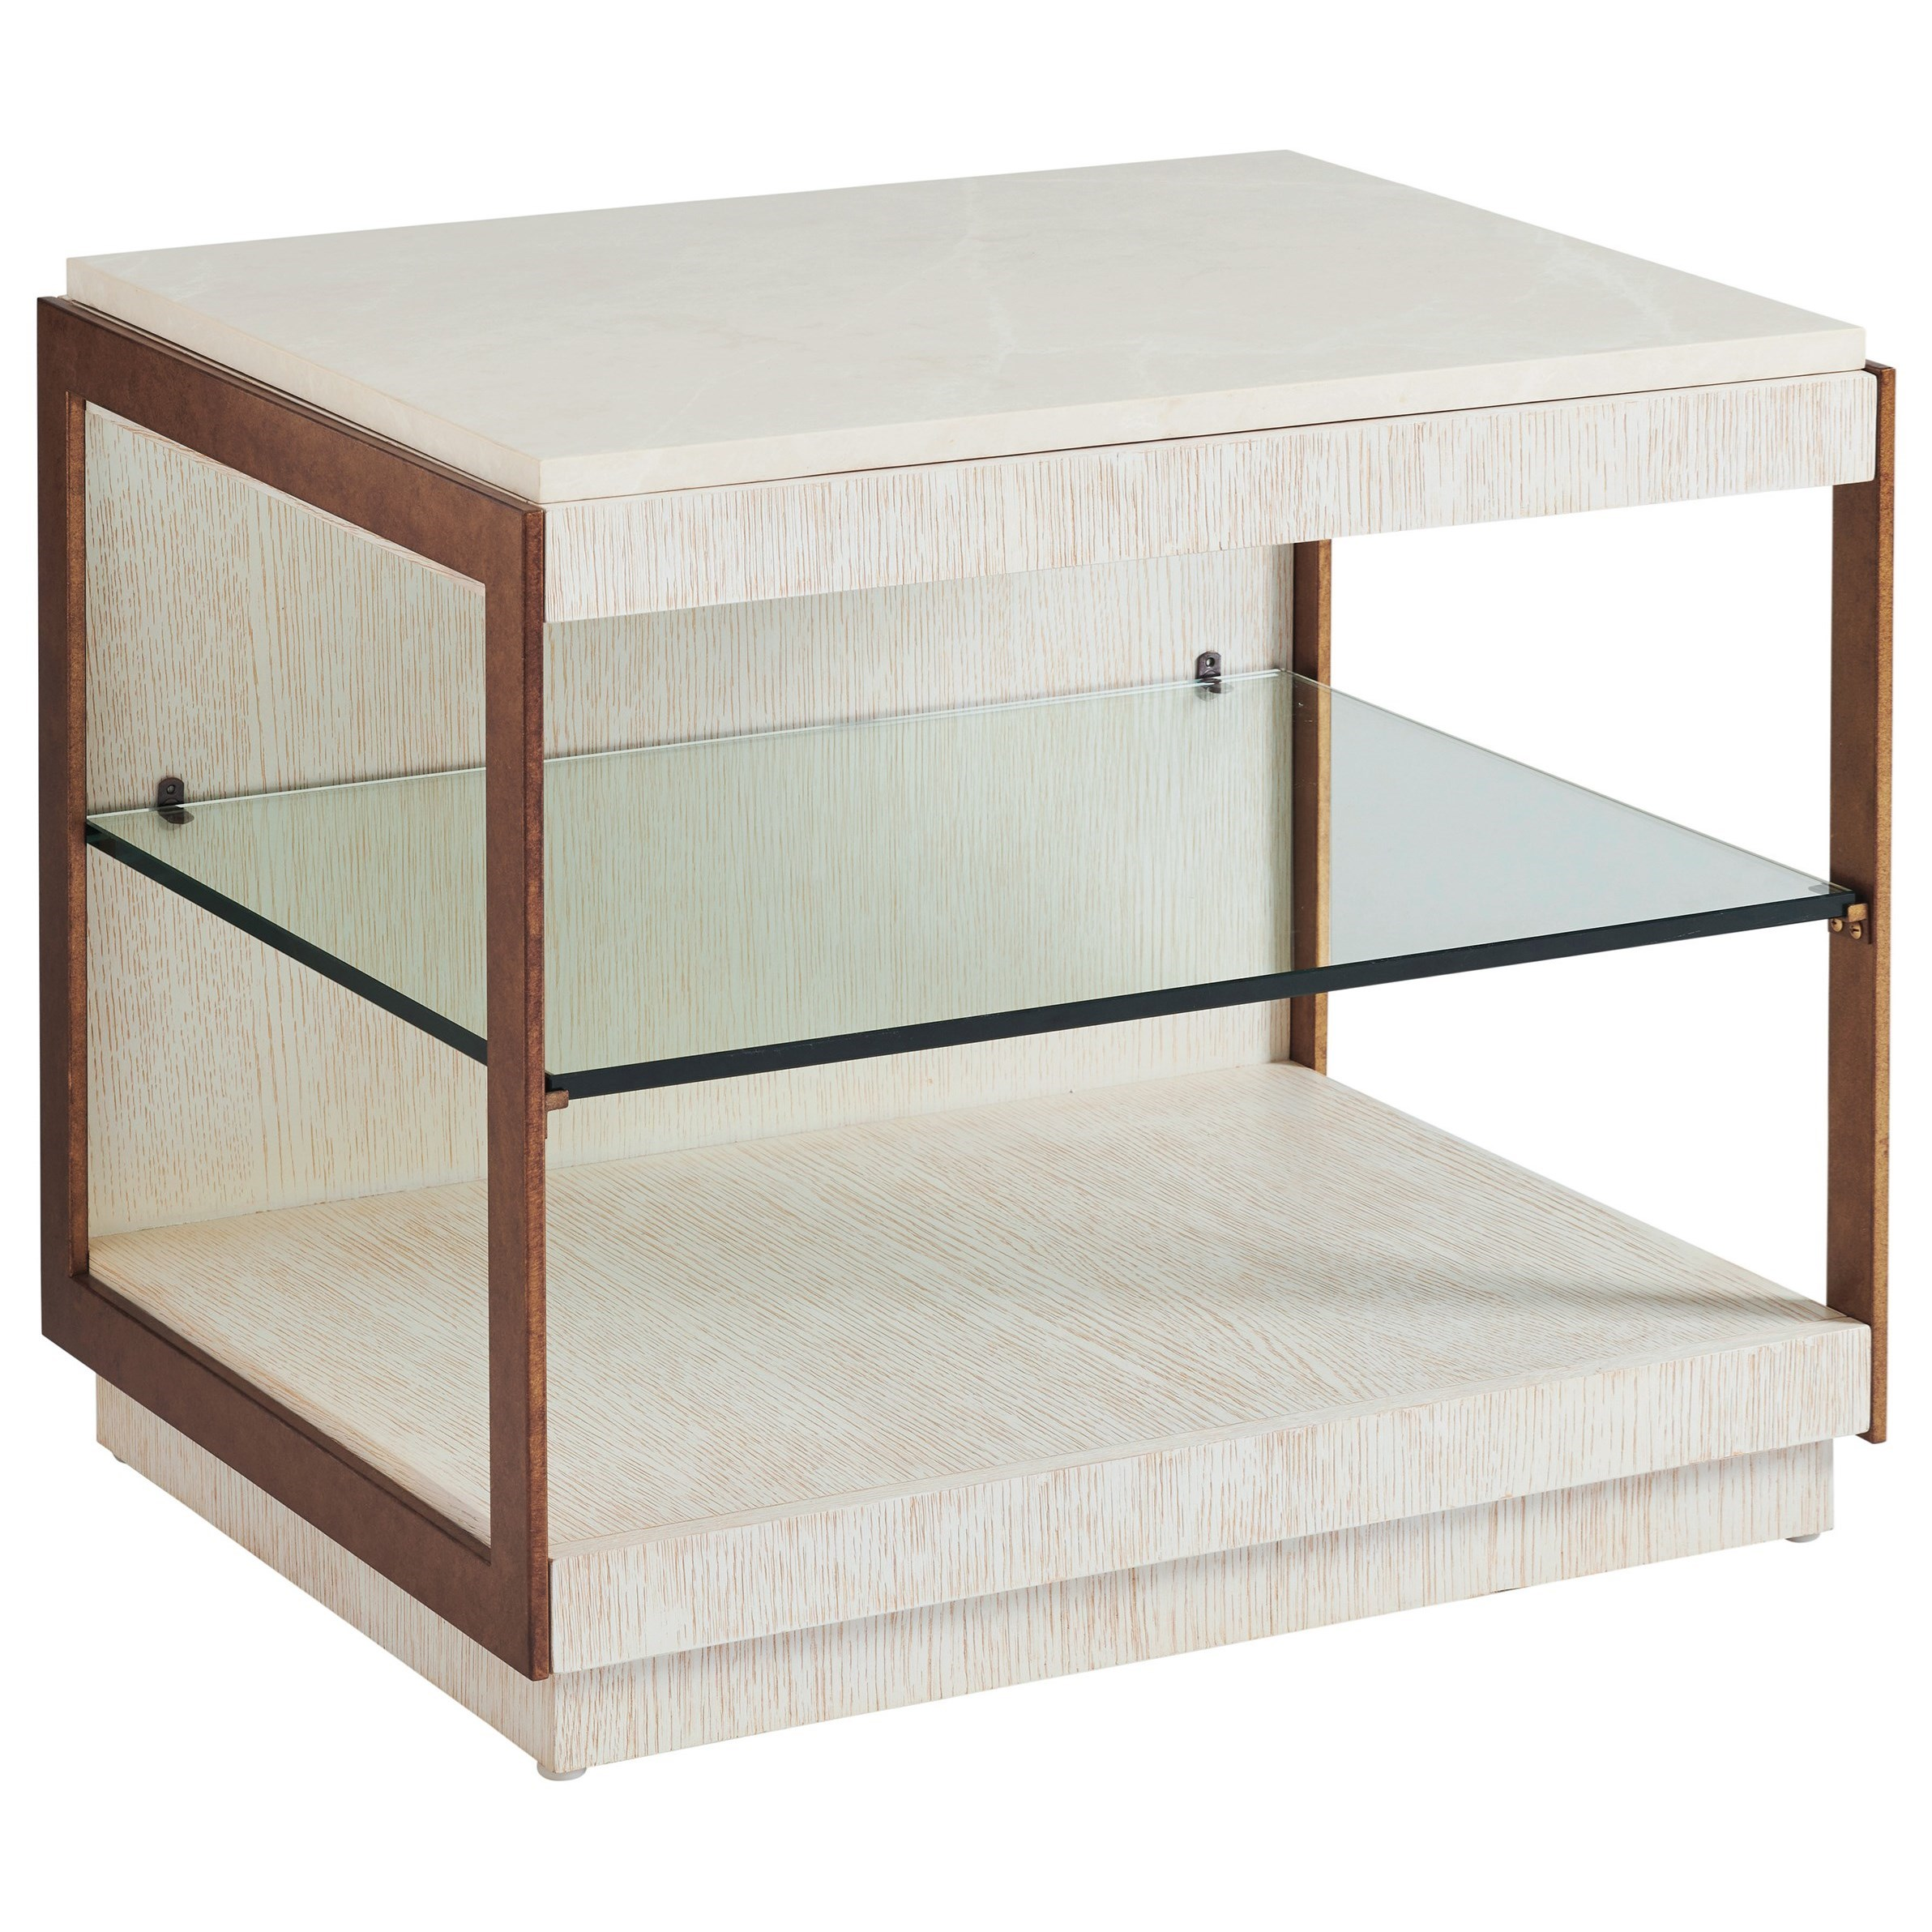 Carmel Point Lobos Rectangular End Table by Barclay Butera at Baer's Furniture